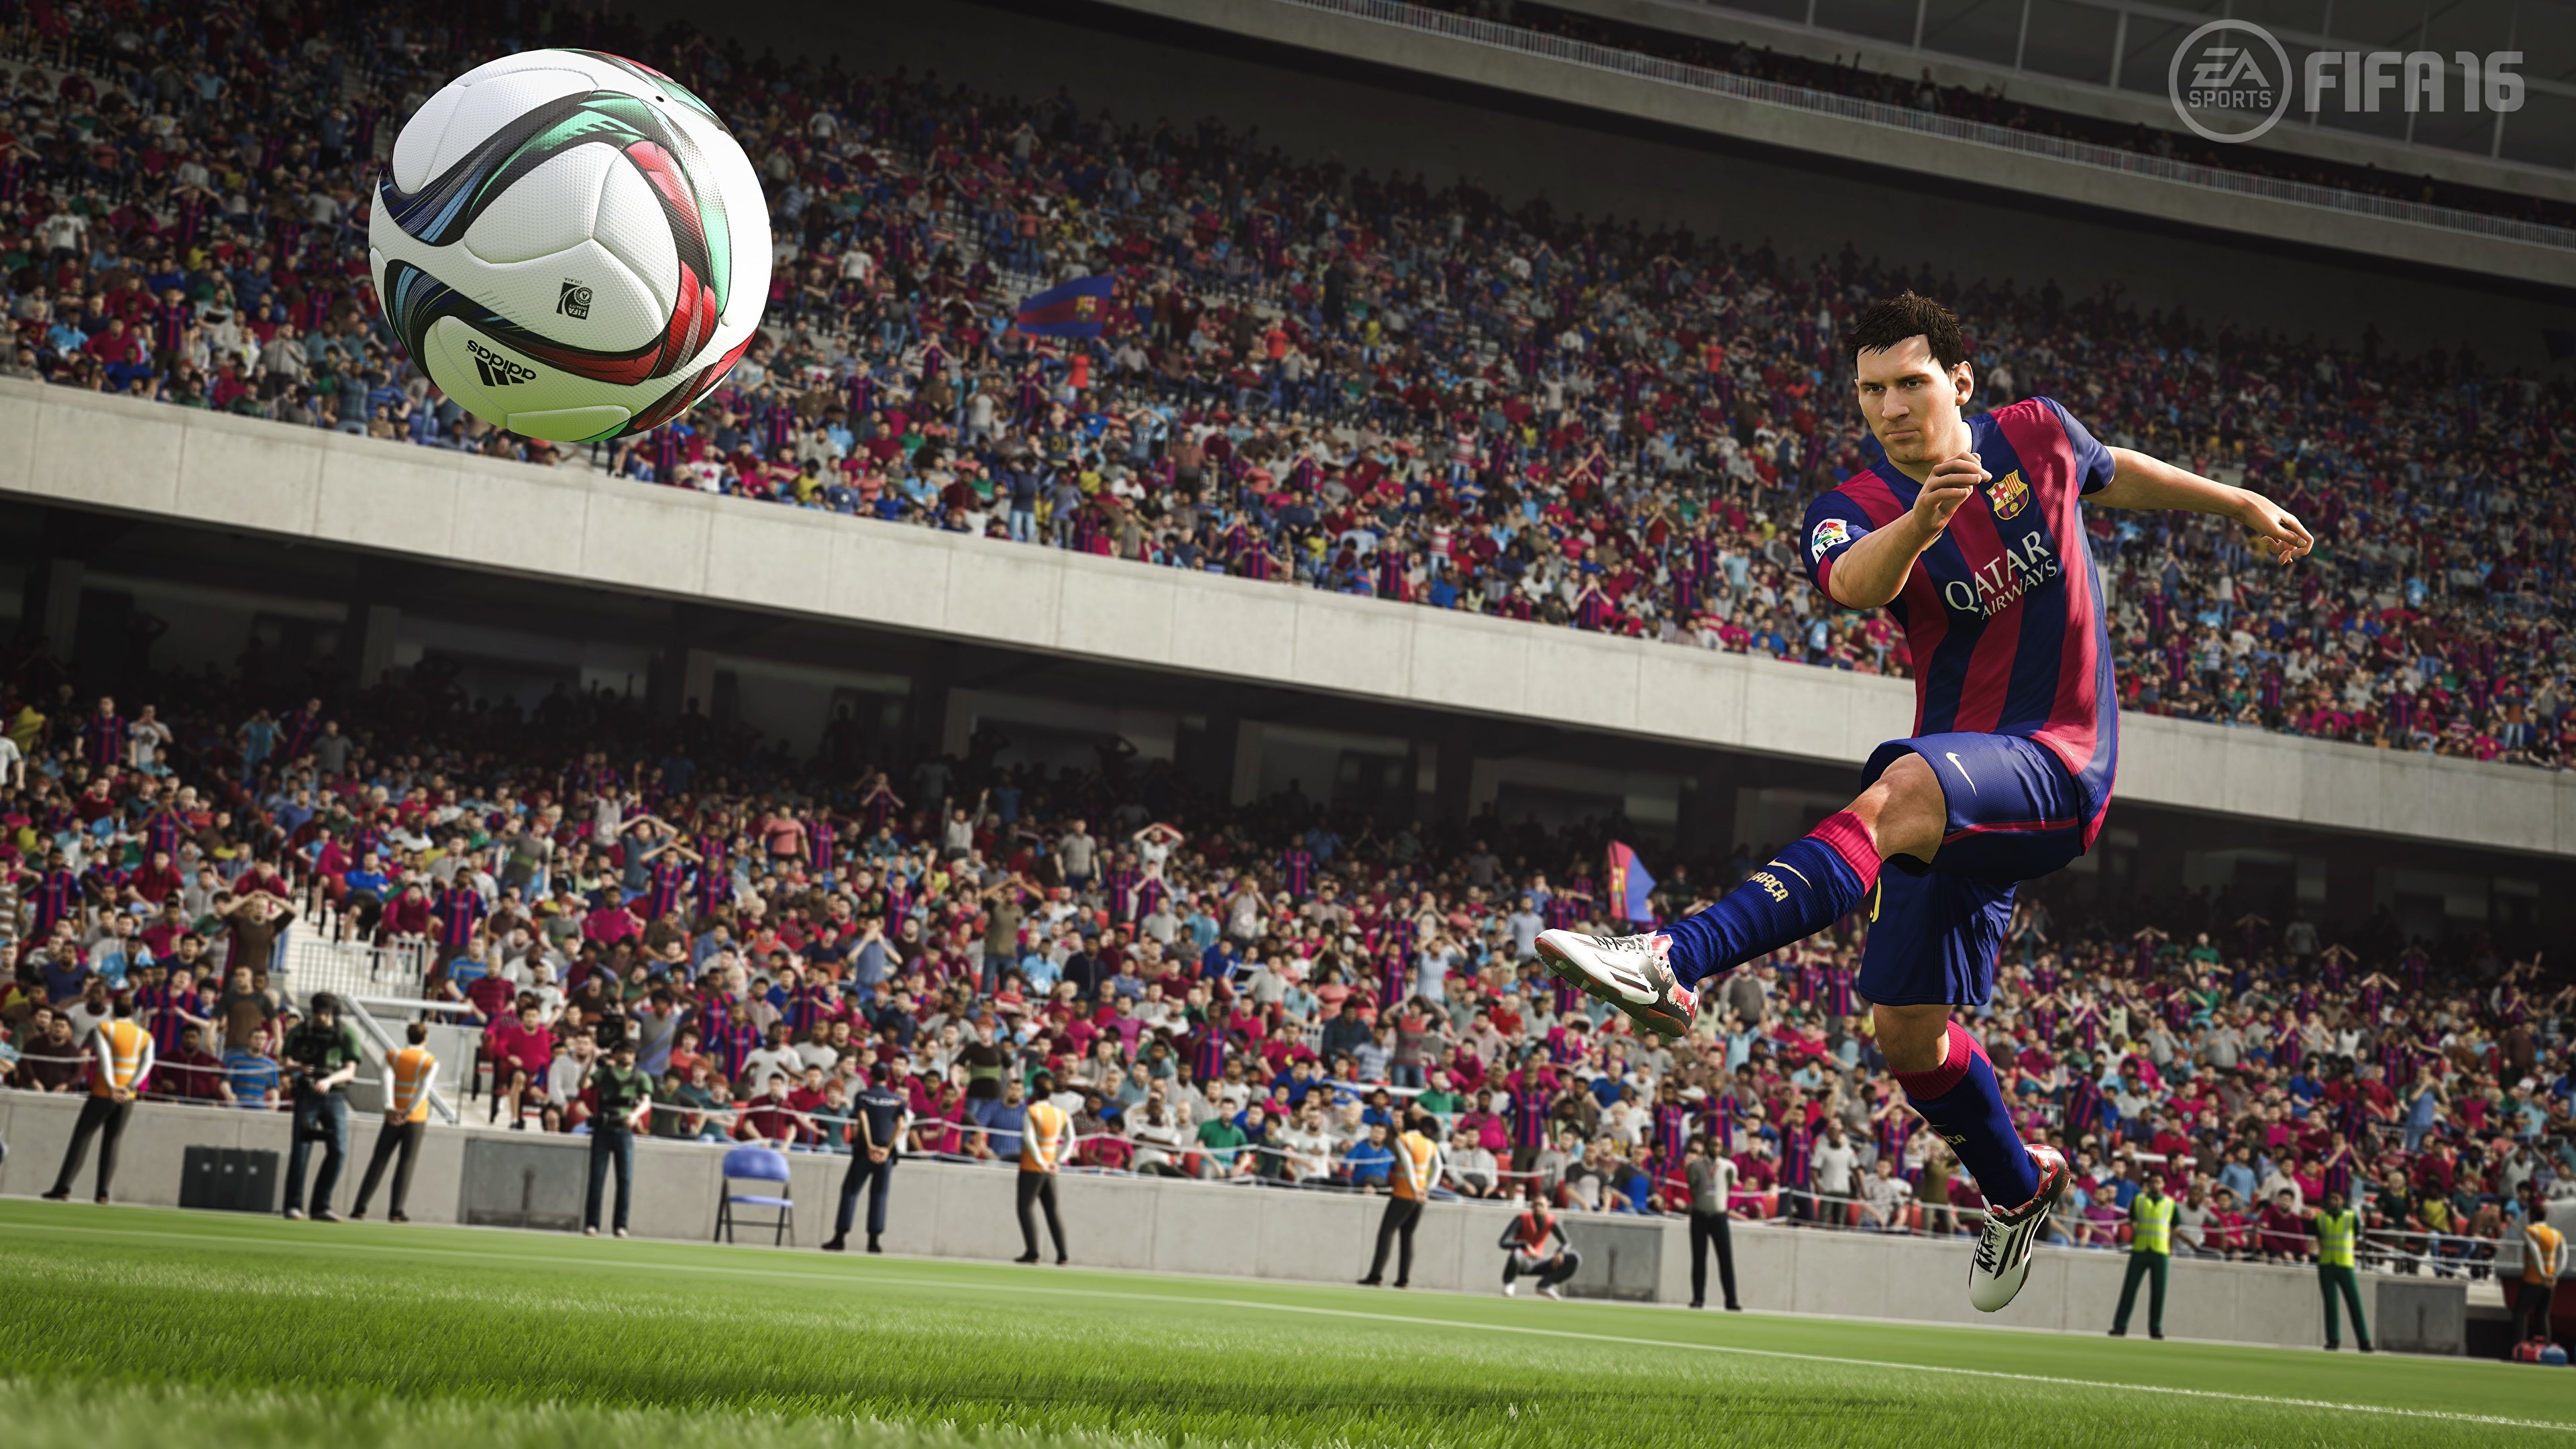 Picture Lionel Messi To hit Fifa 16 barca Footbal 3D 3840x2160